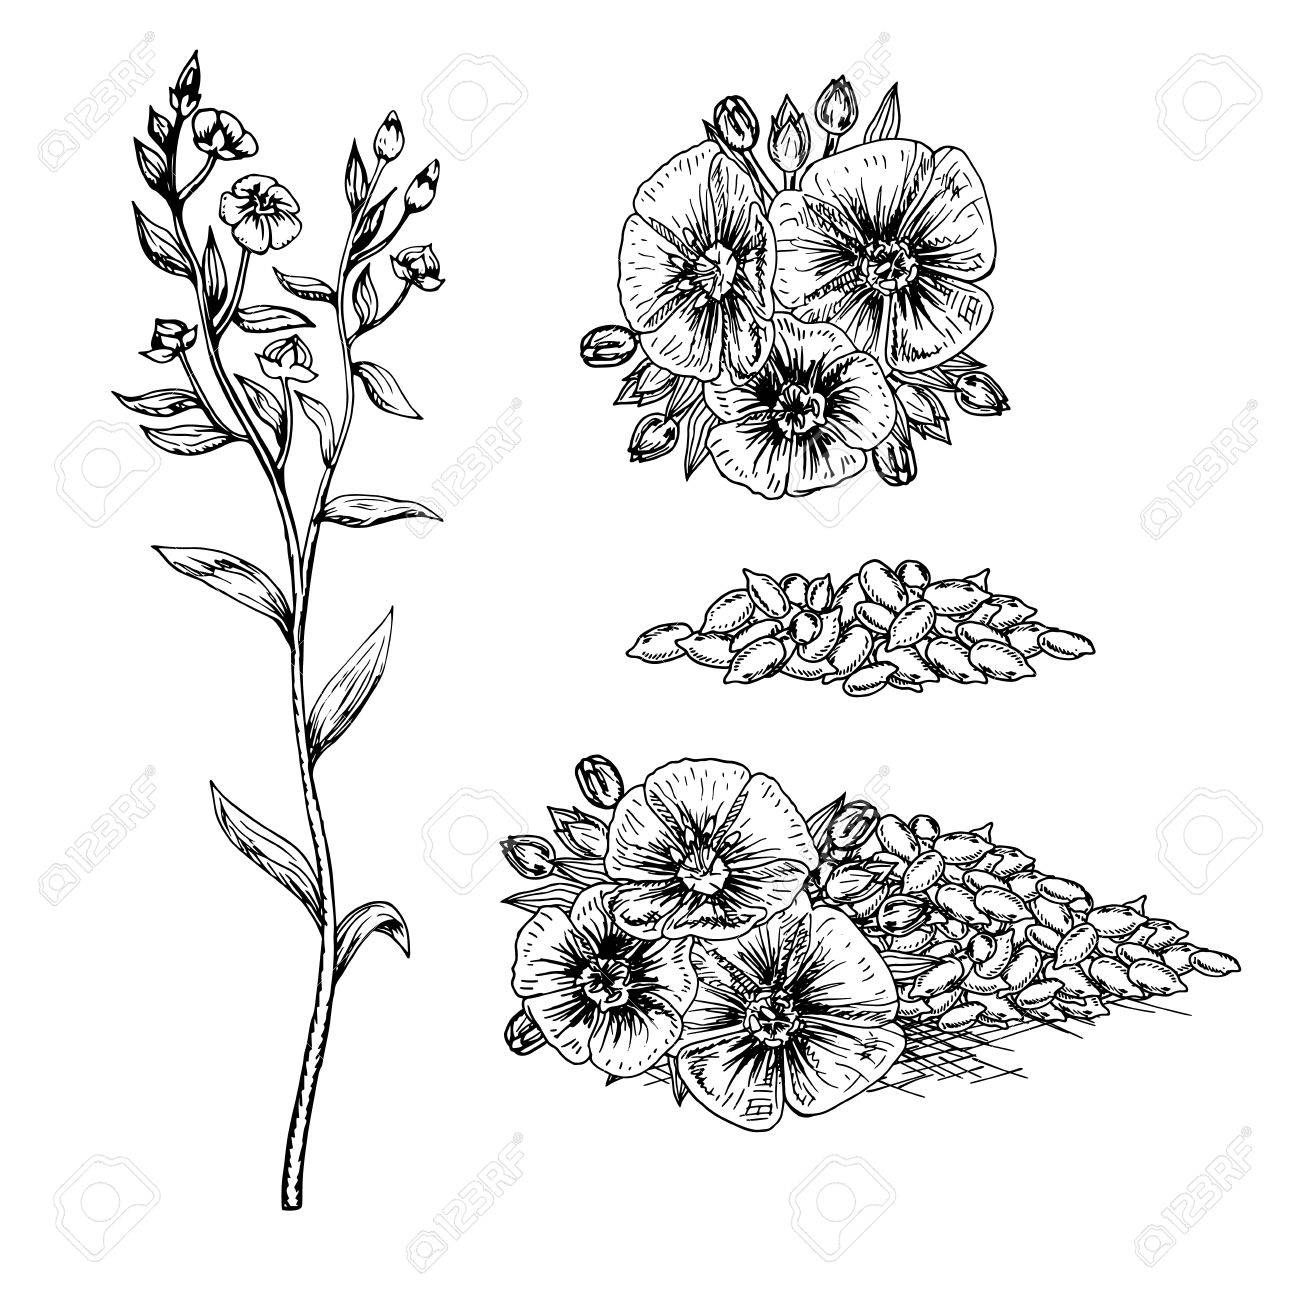 1300x1300 Hand Drawn Flax Flowers And Seeds. Pattern In Vintage Style